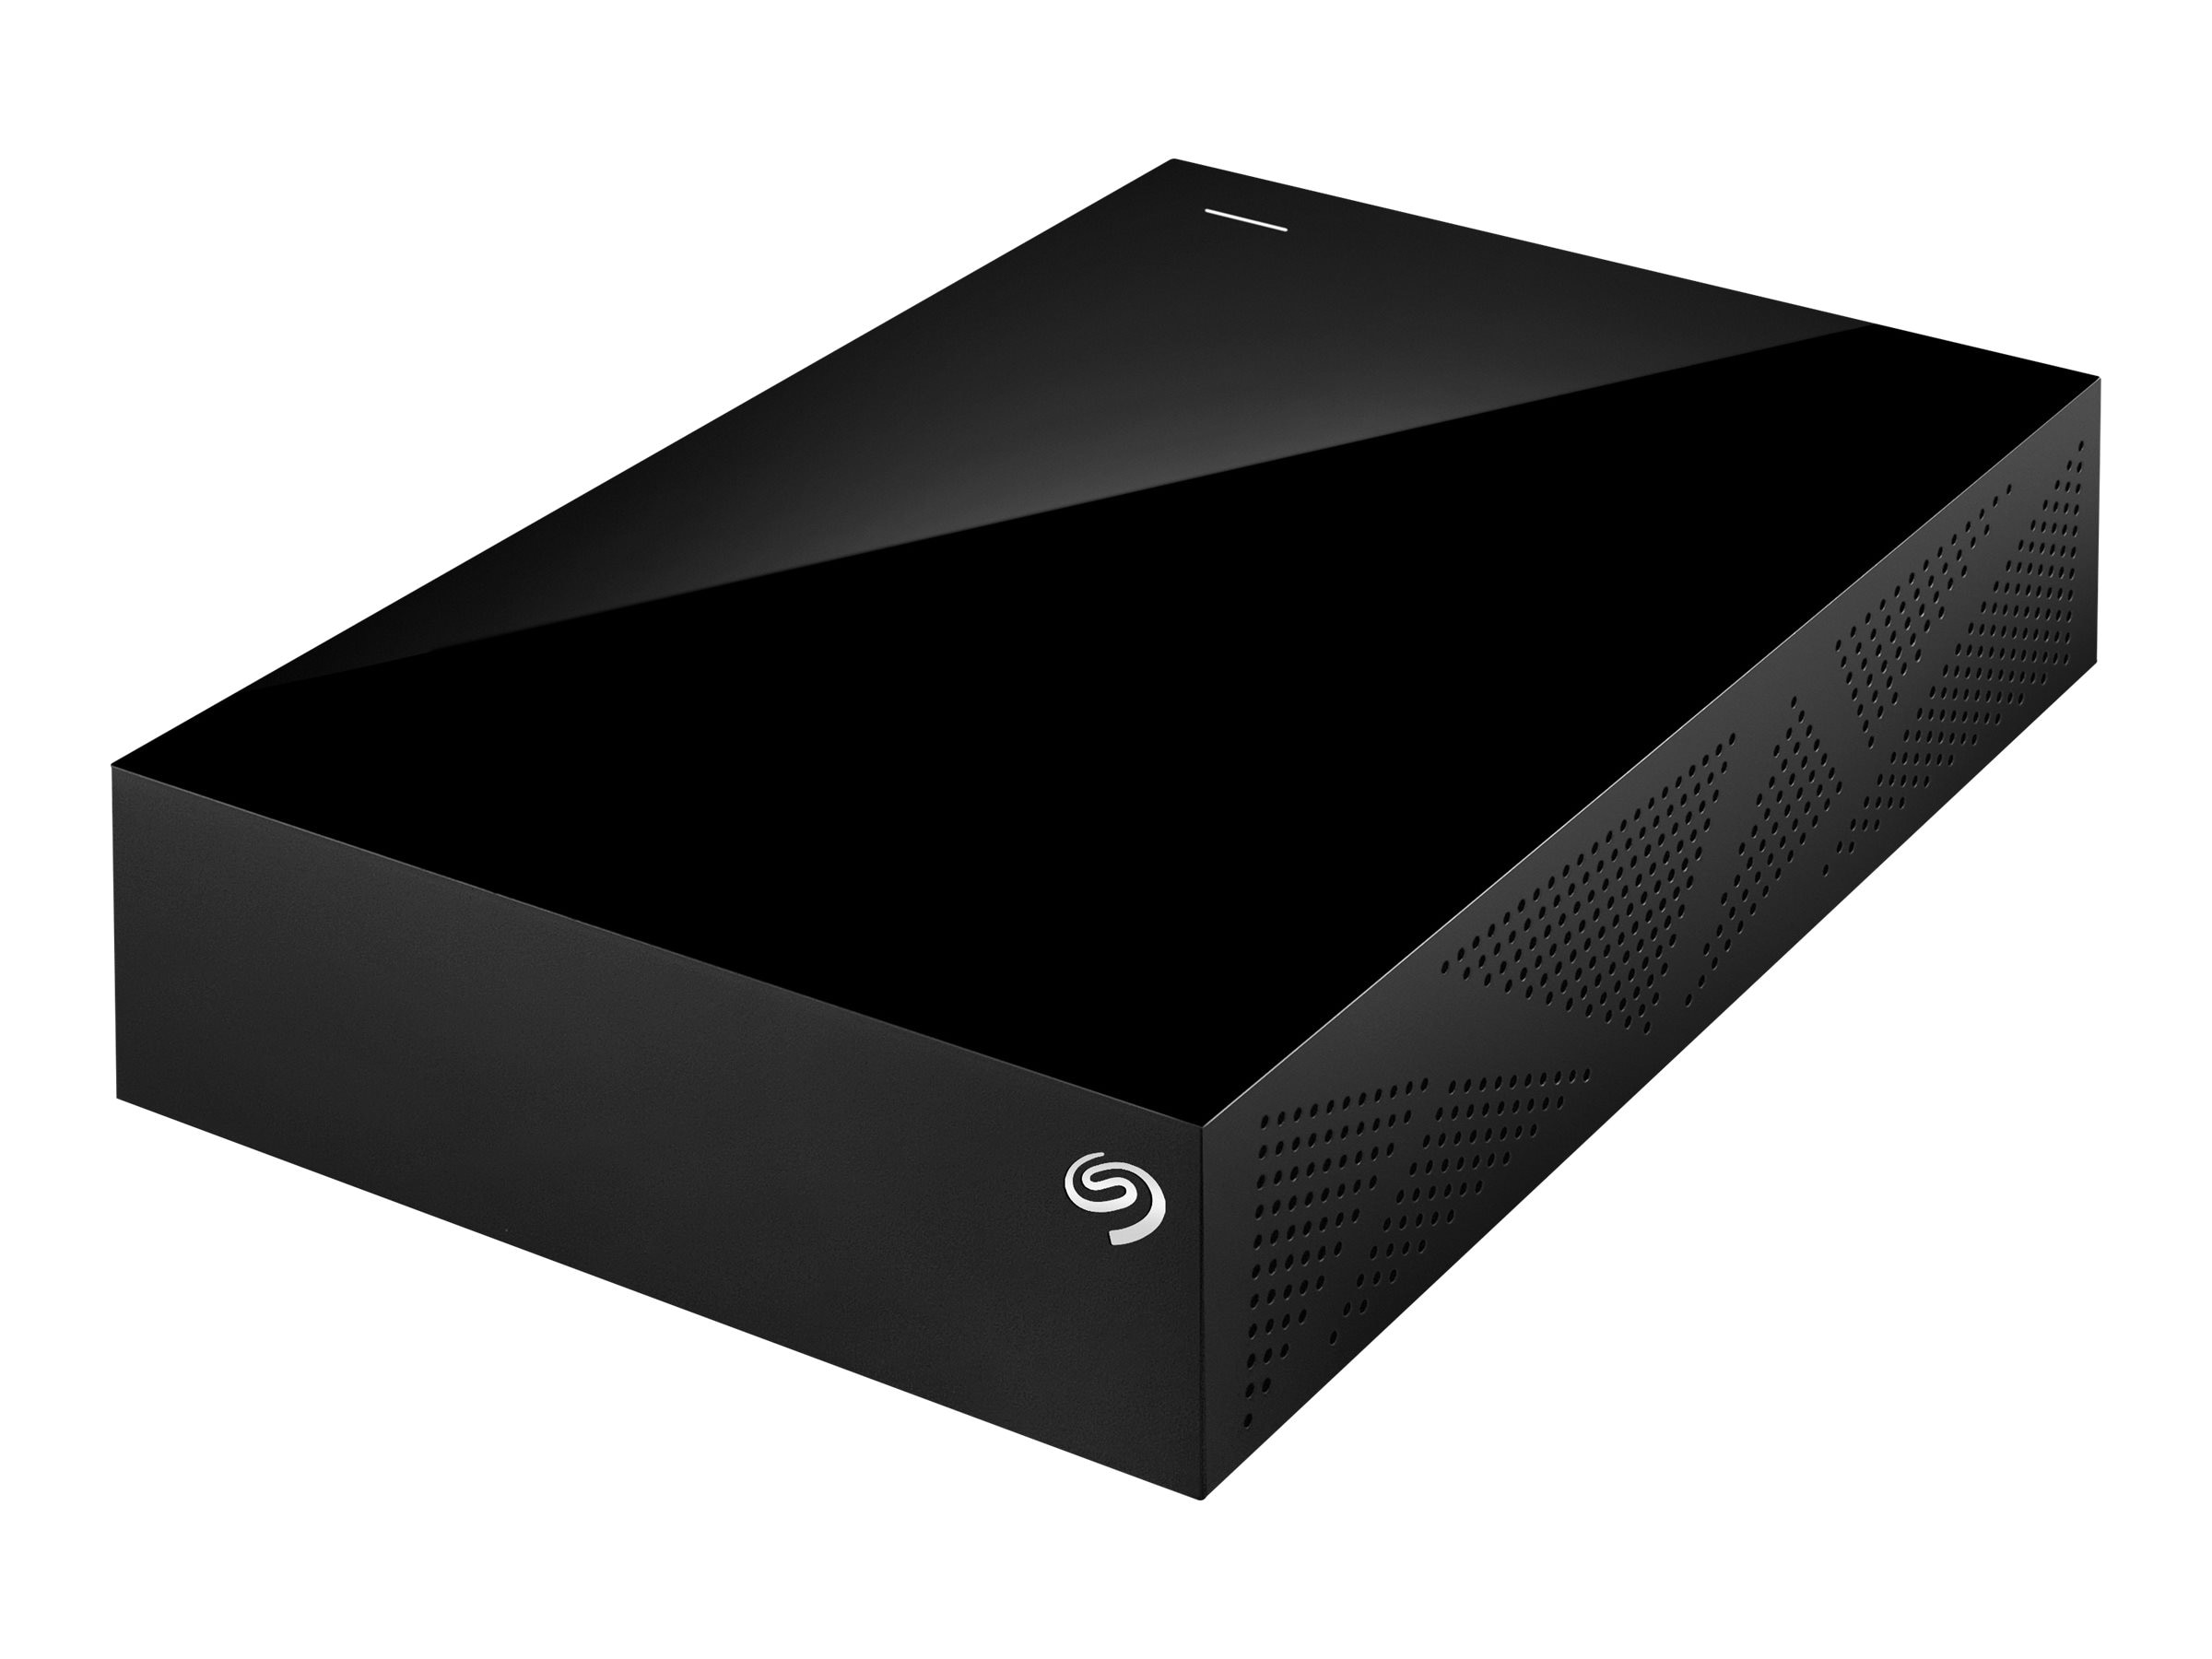 Seagate 8TB Backup Plus USB 3.0 3.5 Desktop Hard Drive - Tuxedo Black, STDT8000100, 18361445, Hard Drives - External